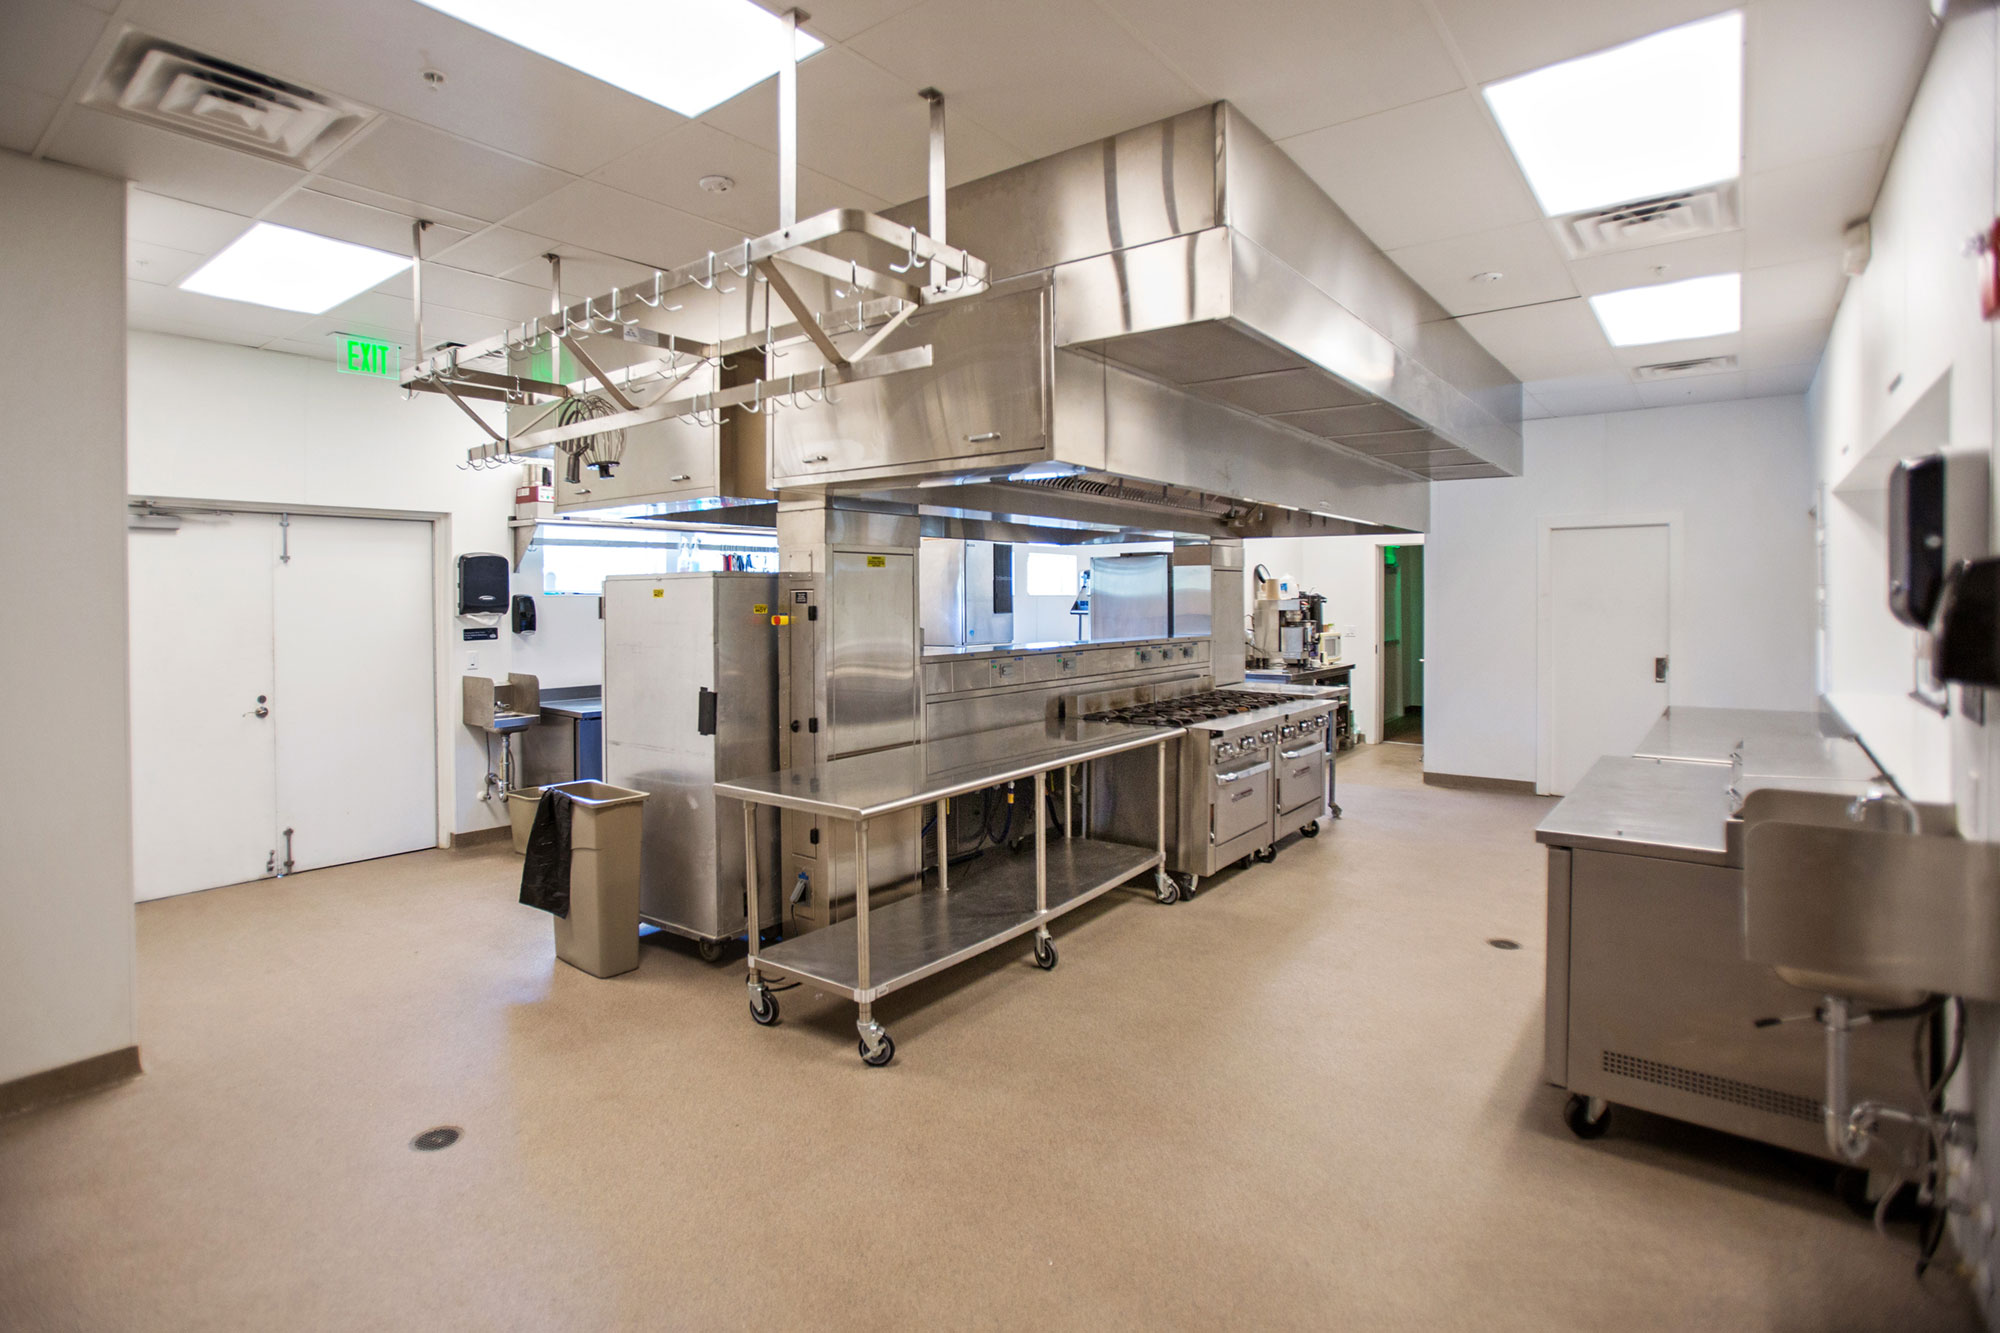 commercial building interior kitchen